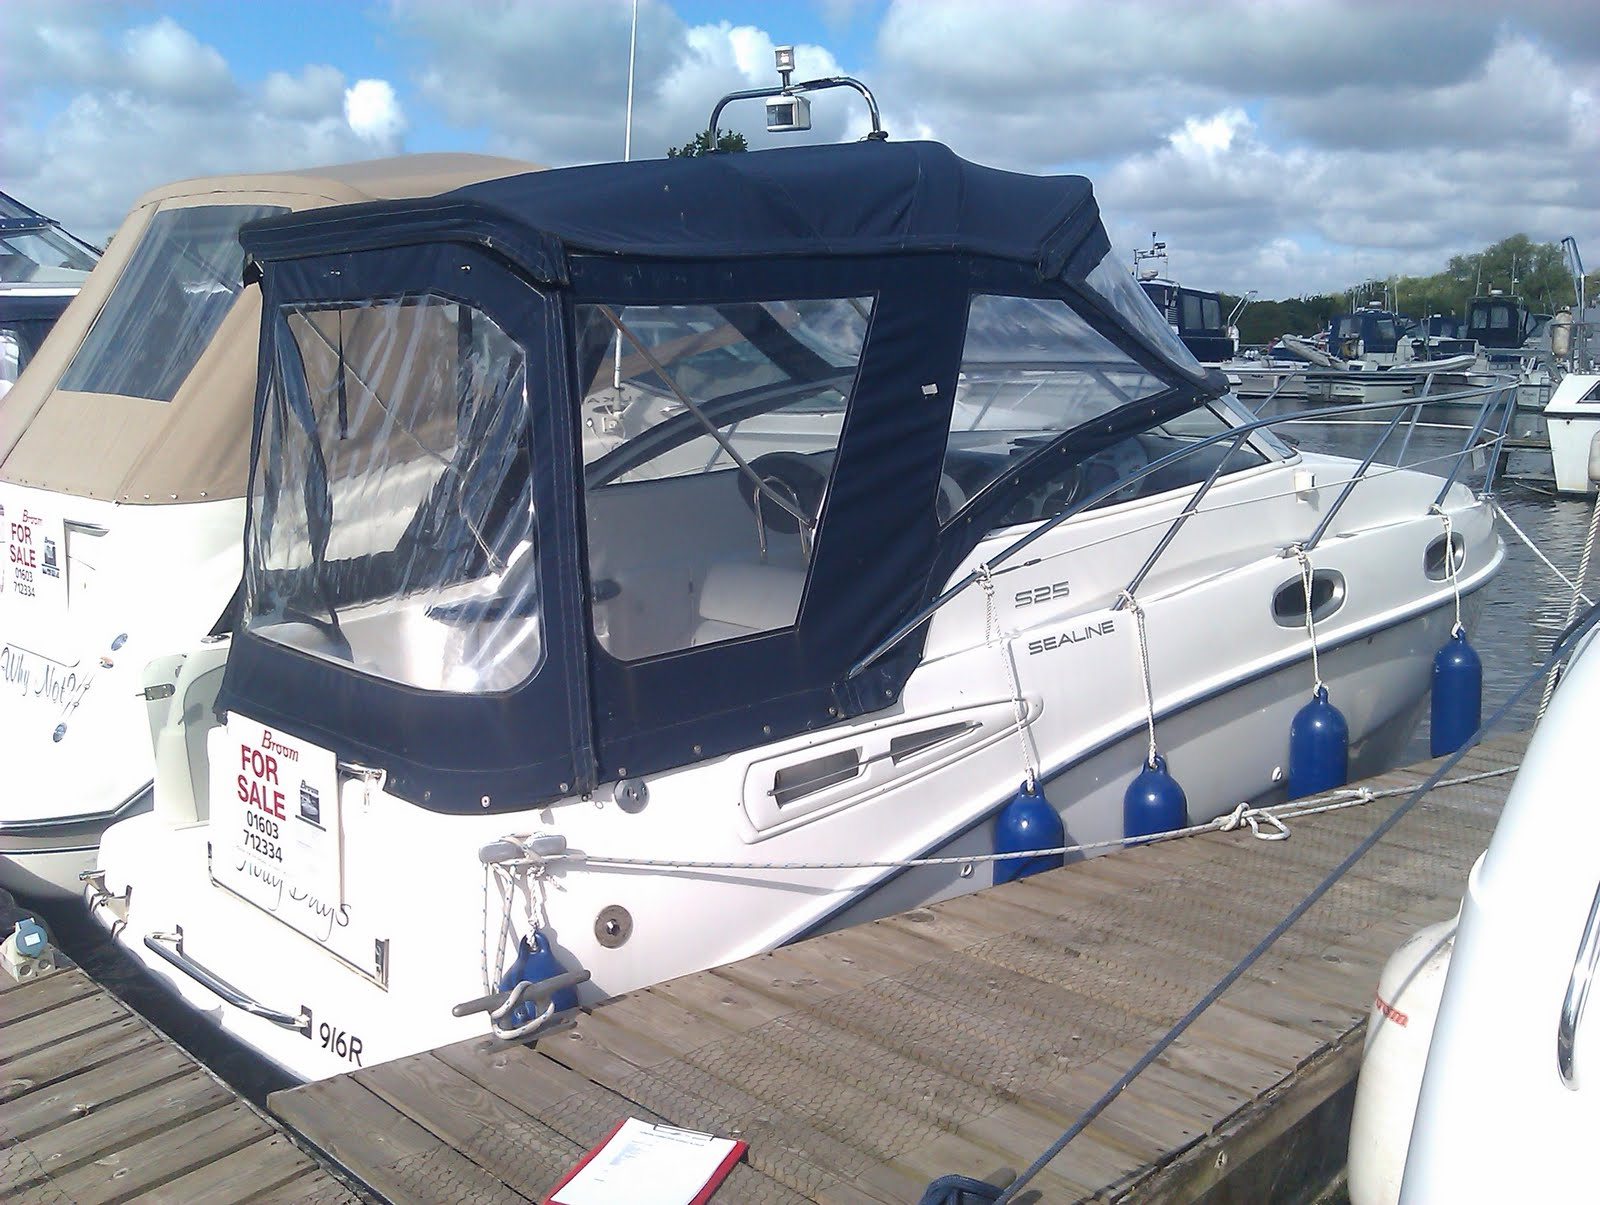 I had the morning at Brooms Boats in Brundall today Surveying this Sealine ...